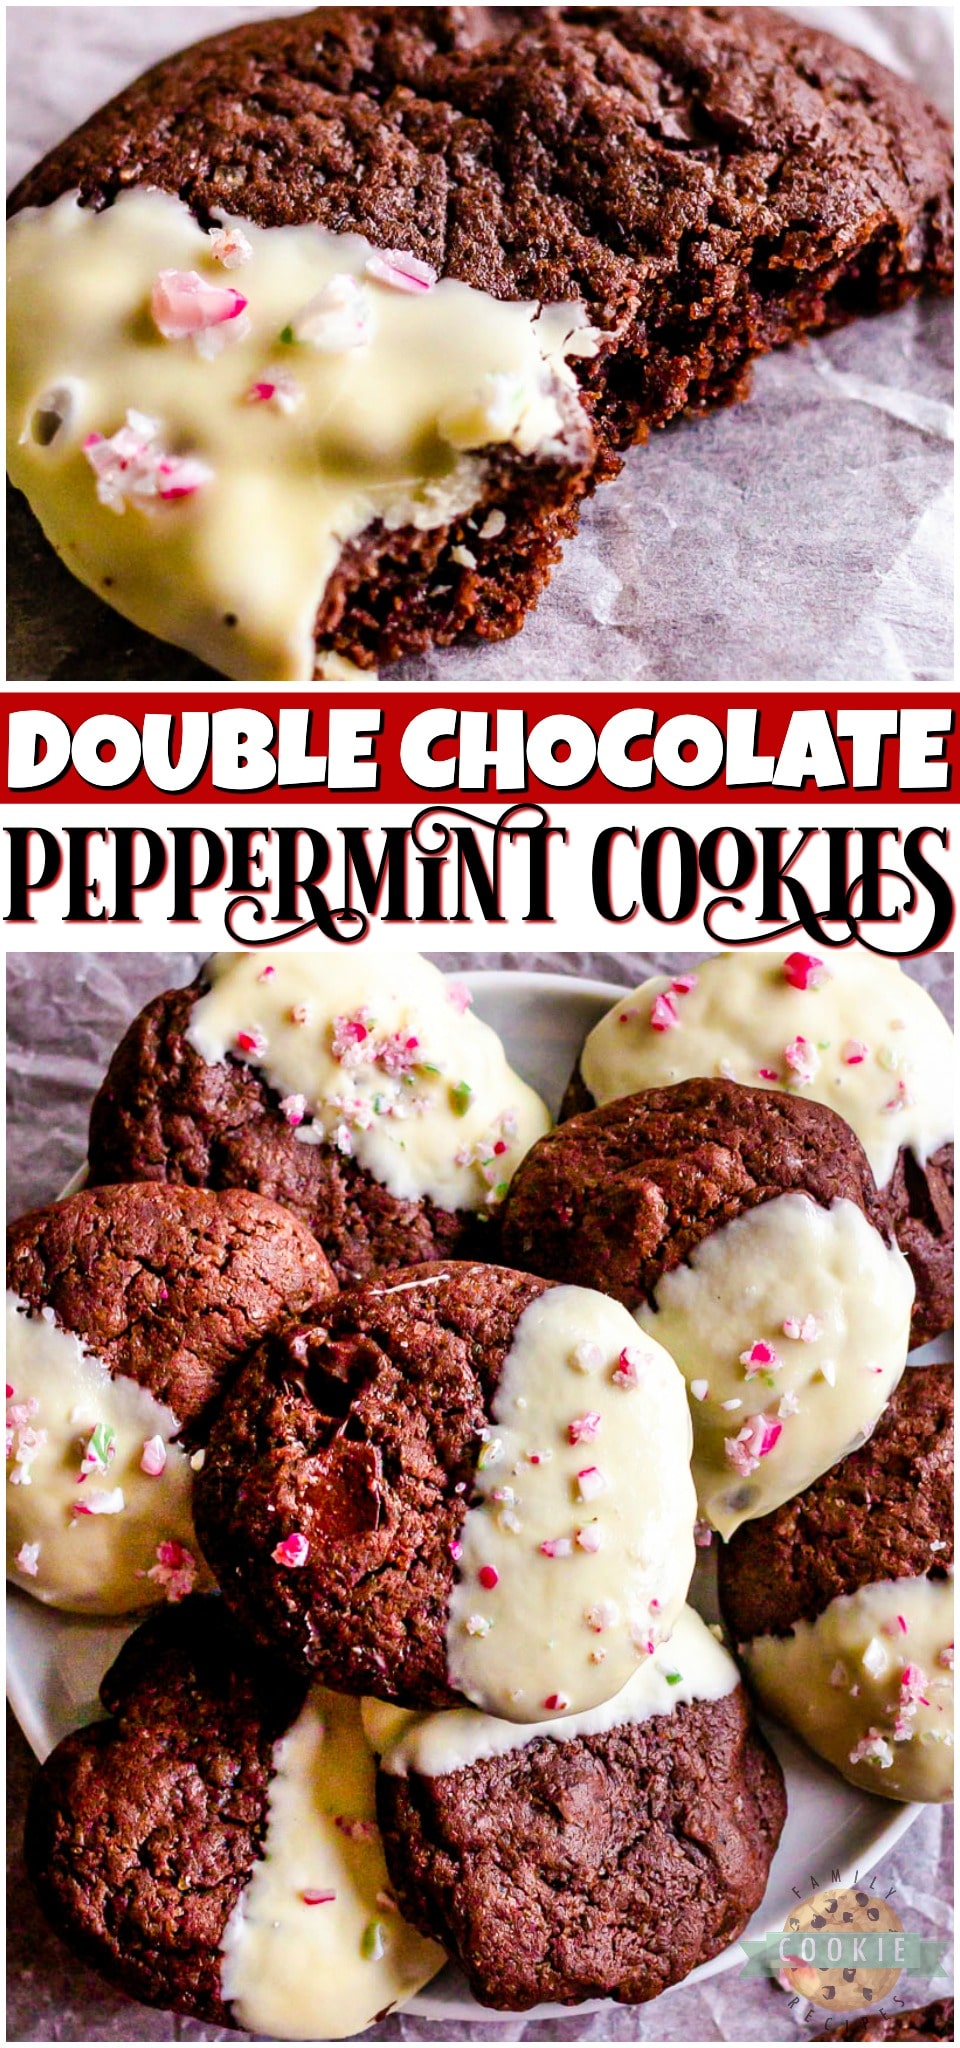 Chocolate Peppermint Cookies are a delicious double chocolate minty cookie that's dipped in white chocolate! Festive holiday cookie perfect for goodie trays!#chocolate #peppermint #baking #cookies #Christmas #easyrecipe from FAMILY COOKIE RECIPES via @familycookierecipes